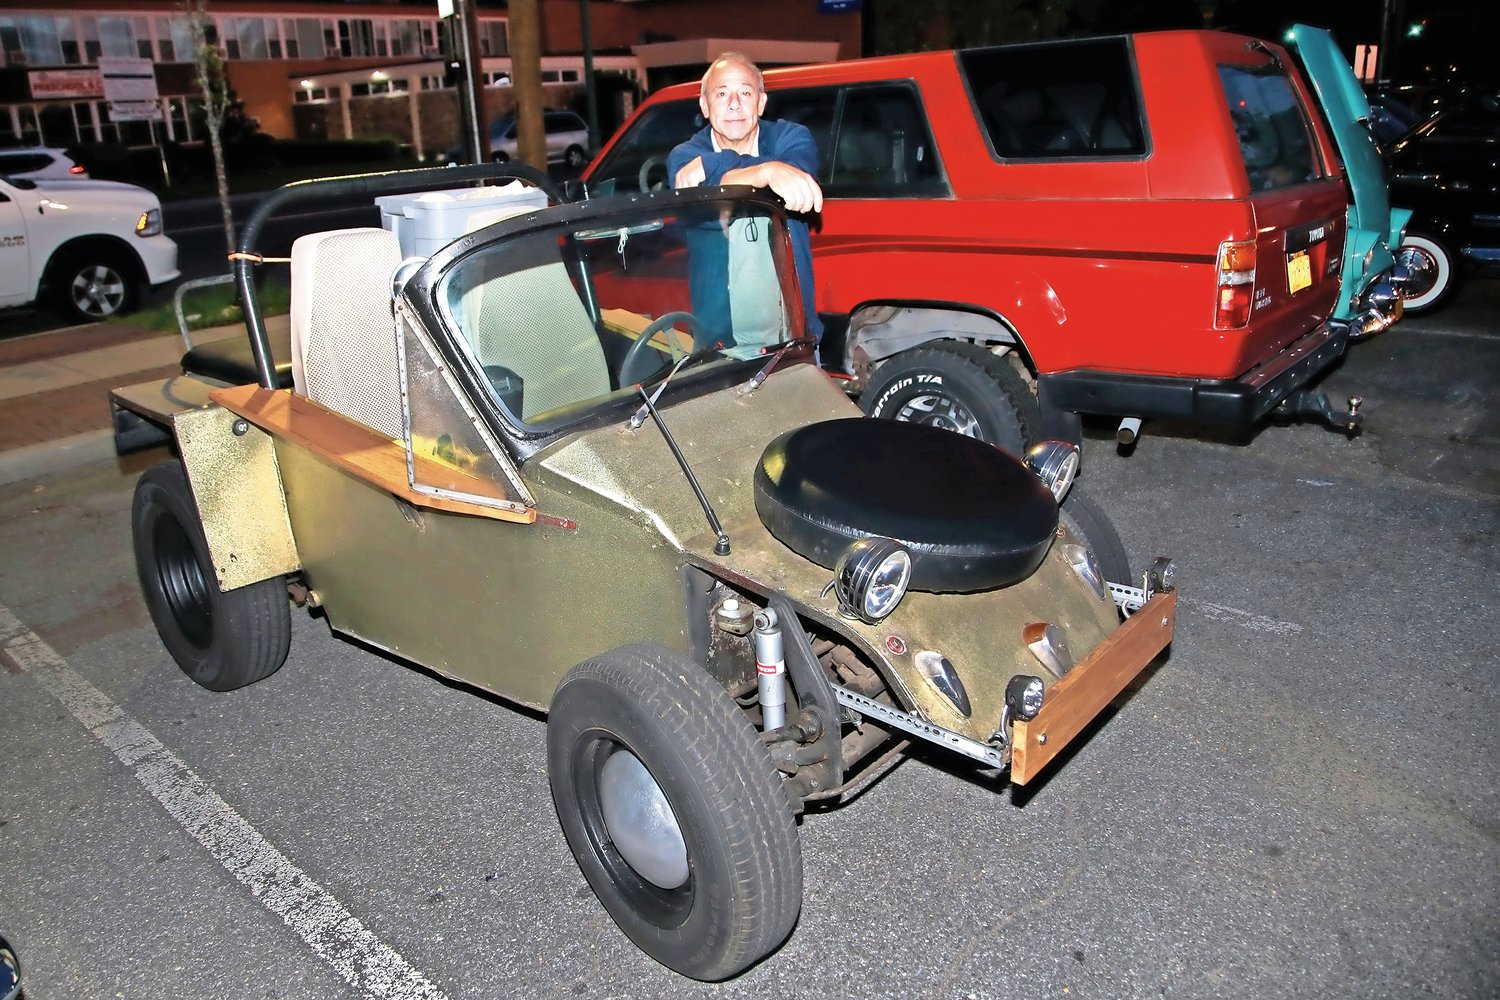 John Randazzo, president of the Dawgwood Boyz club, brought his one-of-a-kind 1960 Volkswagen Dune Buggy to the club's weekly car show on Aug. 27.